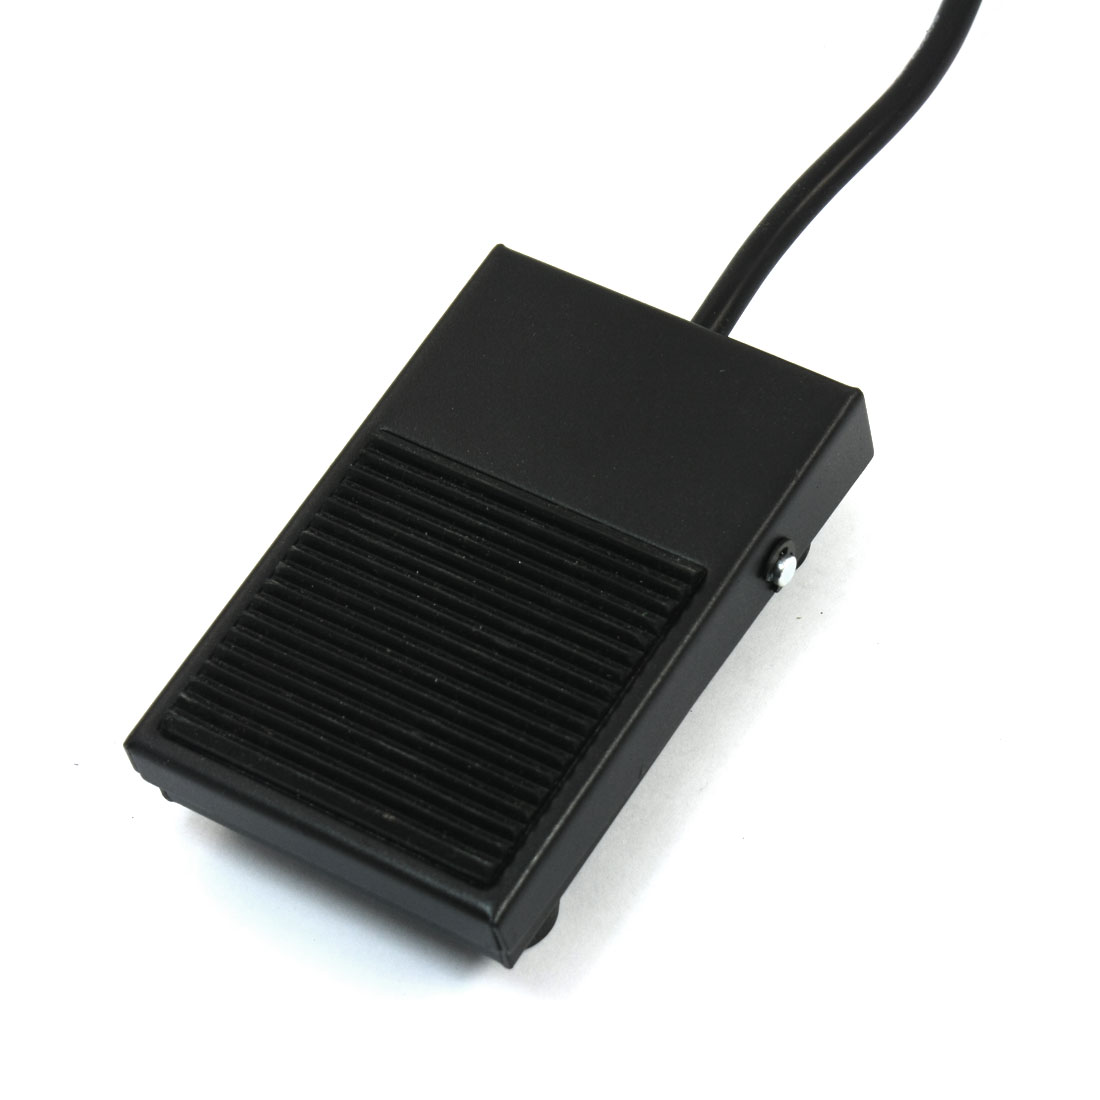 CFS-1 250V 10A SPDT 1NO 1NC Handsfree Momentary Actuator Nonslip Black Rectangle Metal Foot Pedal Switch 2m 6.6ft